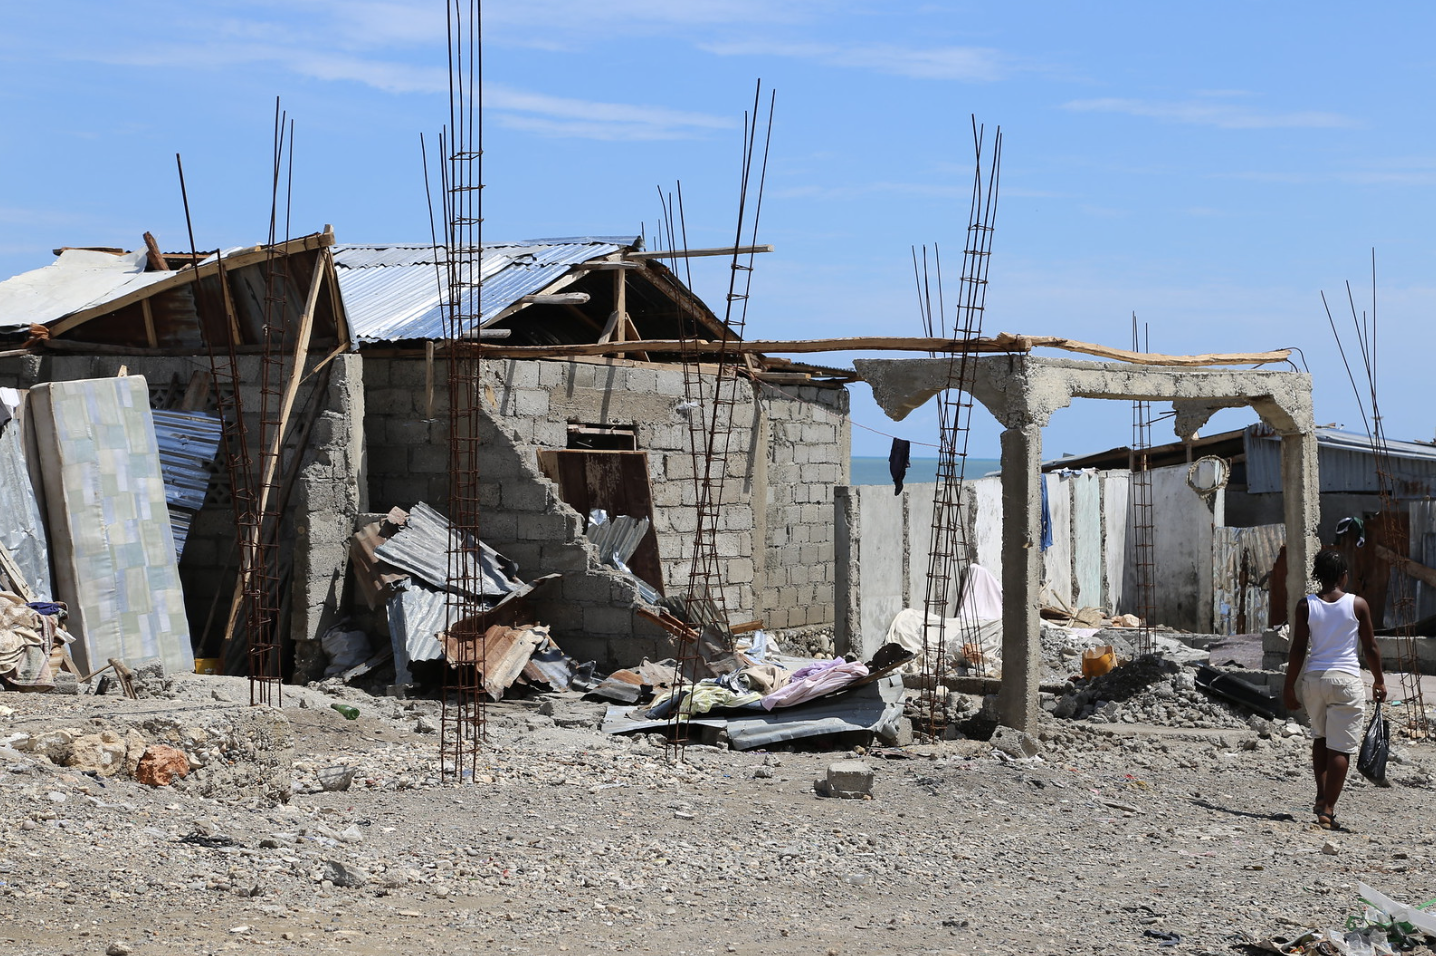 Hurricane Matthew did great damage to the coastal town of Jérémie, Haiti. Some of the worst hit areas were coastal communities like this one. October 14, 2016 (Photo by Nicole Robicheau, International Federation of Red Cross) Creative Commons license via Flickr